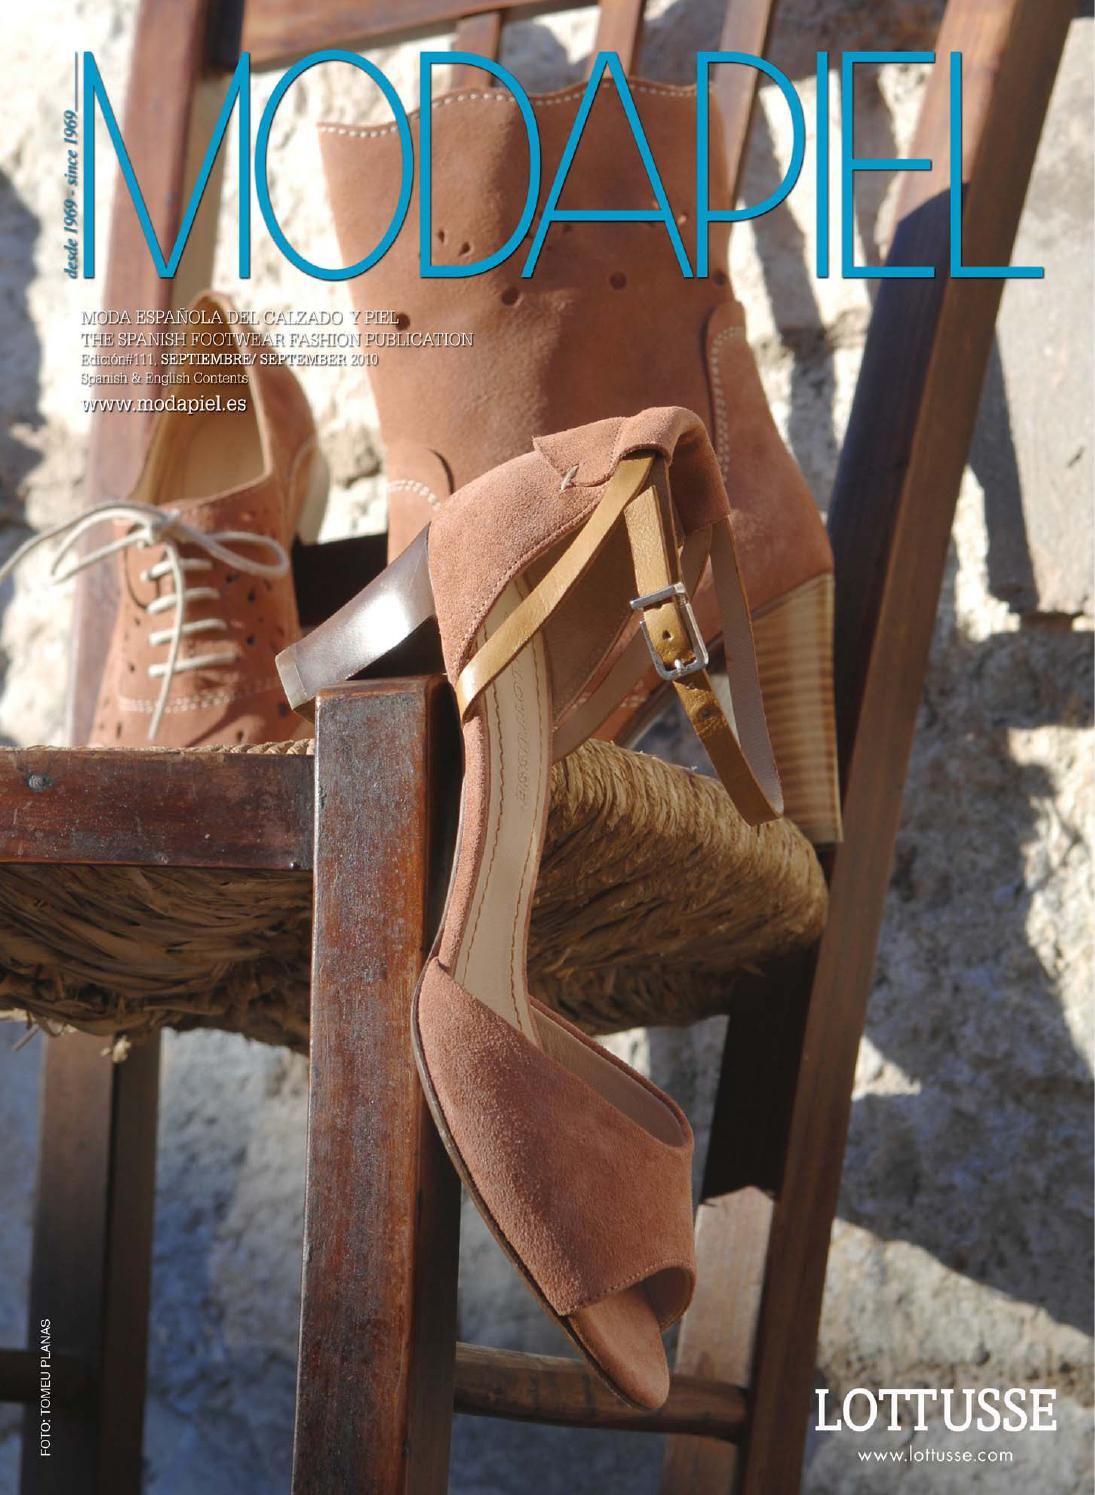 0007a399 Modapiel 111 Shoes and accessories magazine by Prensa Técnica S.L. - issuu